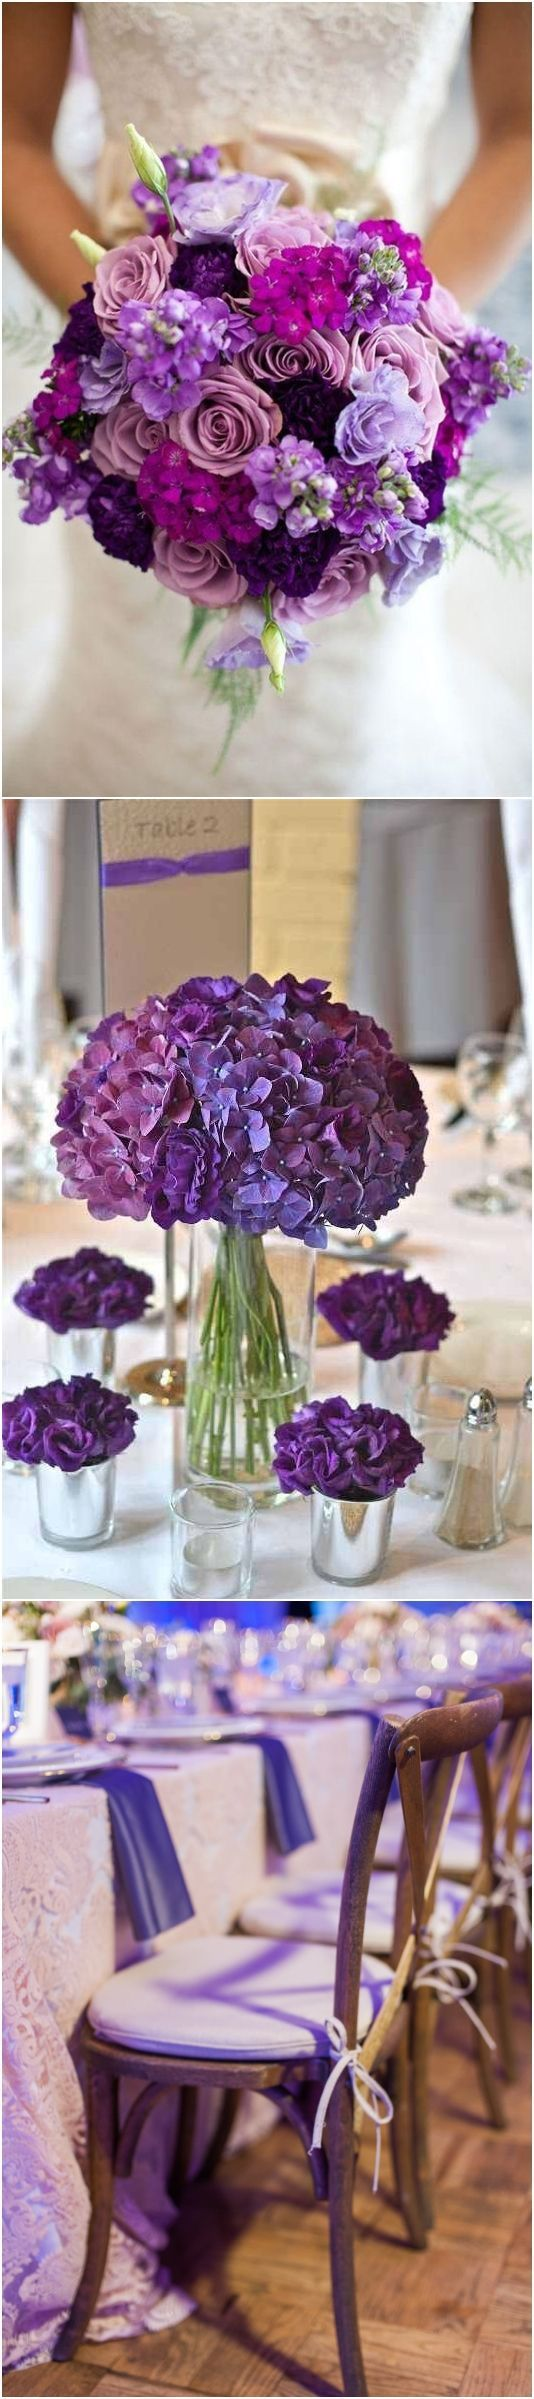 pantone wedding color 2018- Ultra violet purple wedding color ideas / http://www.deerpearlflowers.com/ultra-violet-wedding-color-palette-idea/